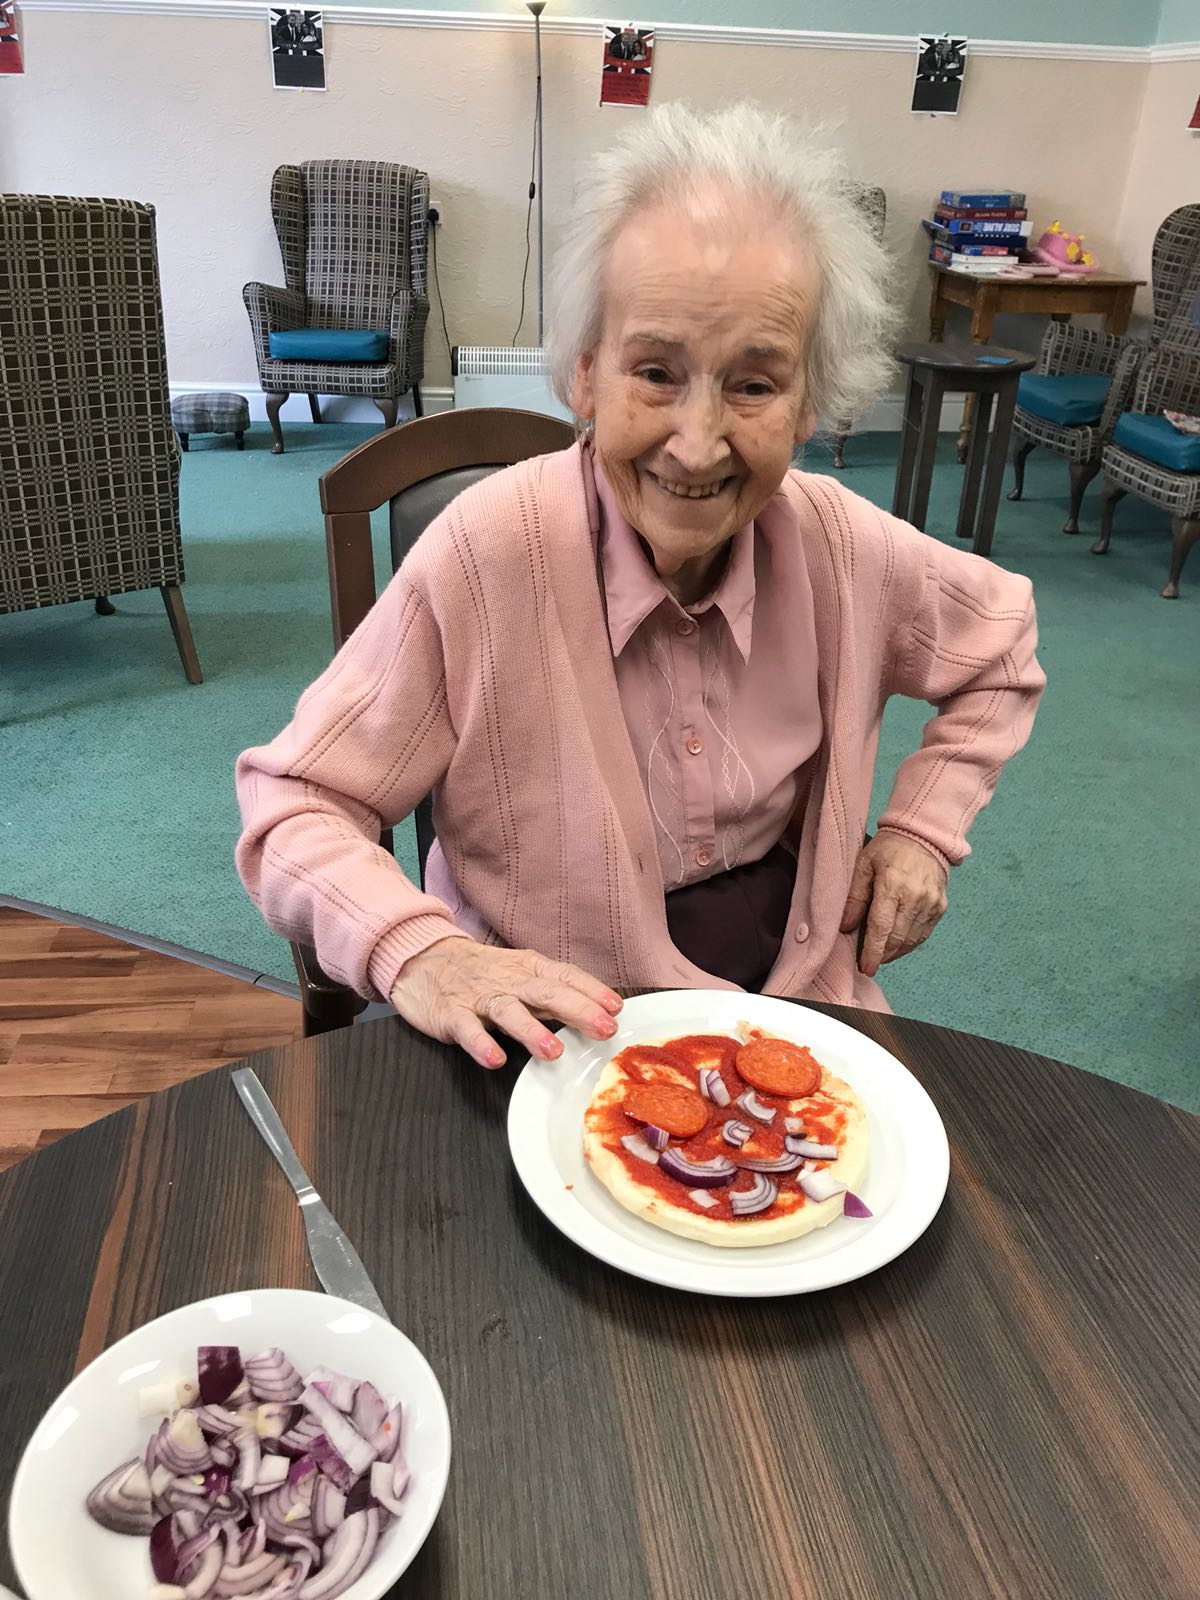 Pizza Making 2018: Key Healthcare is dedicated to caring for elderly residents in safe. We have multiple dementia care homes including our care home middlesbrough, our care home St. Helen and care home saltburn. We excel in monitoring and improving care levels.